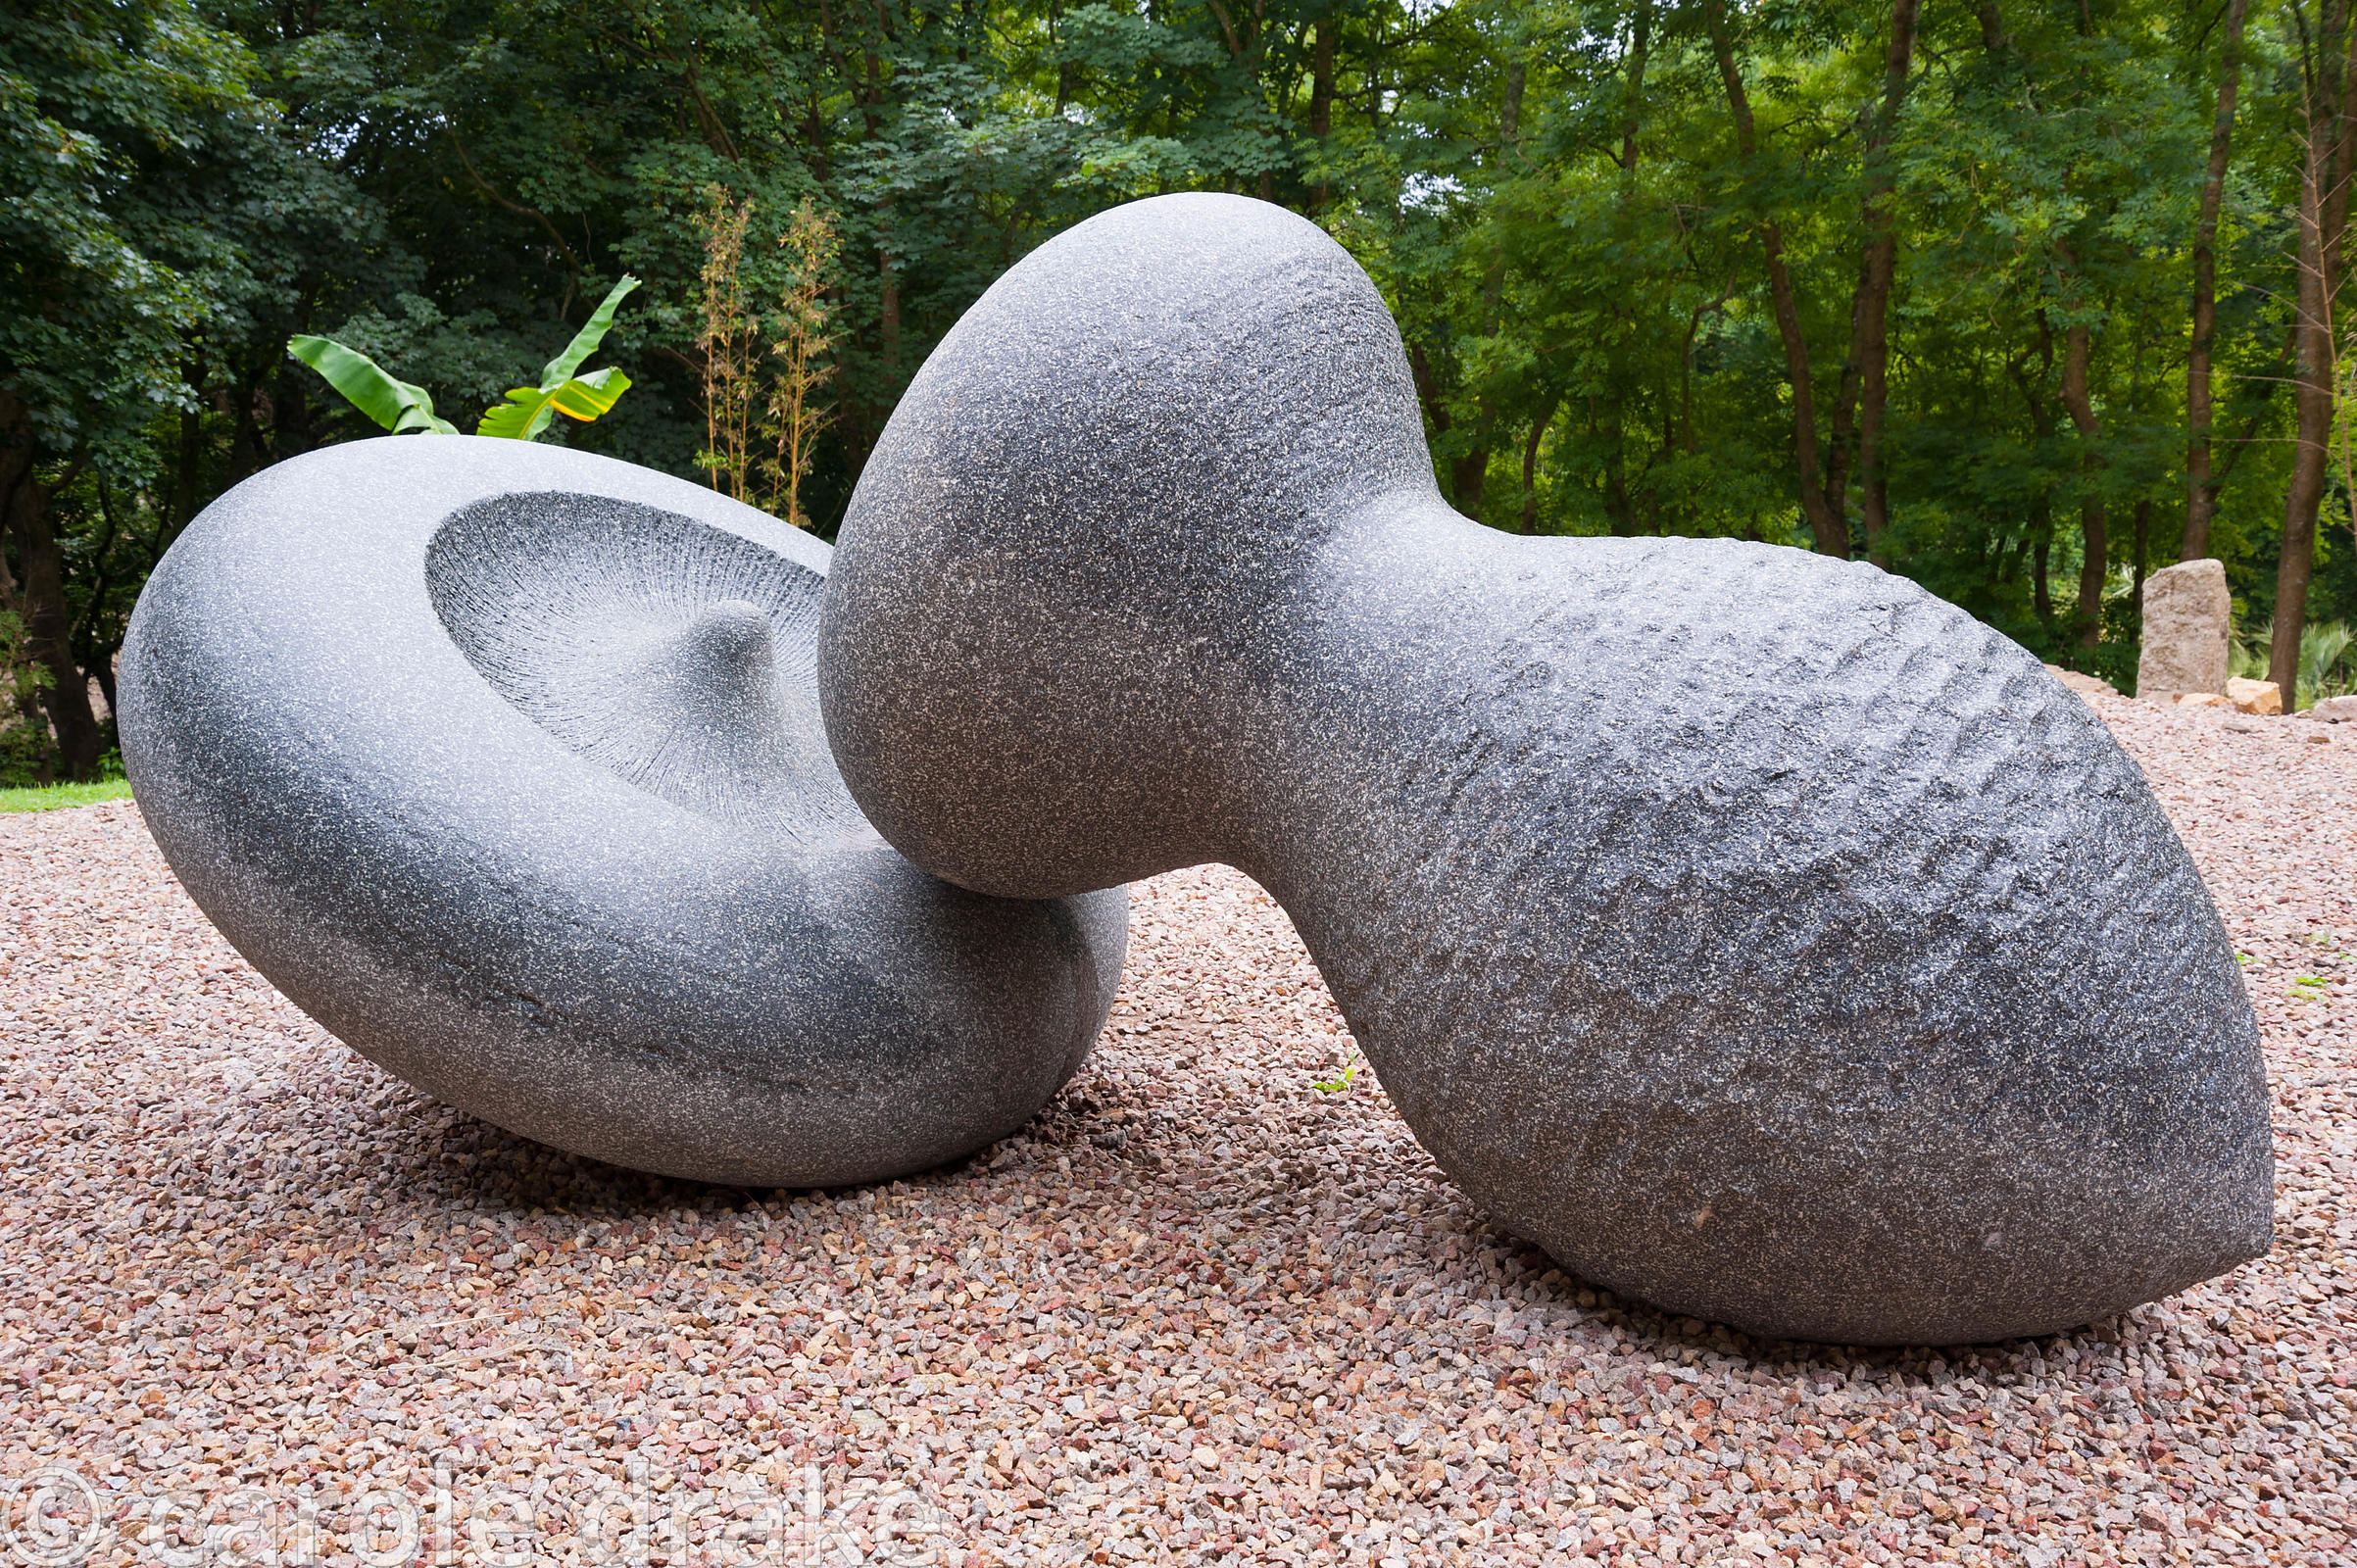 Slip of the Lip by Peter Randall-Page